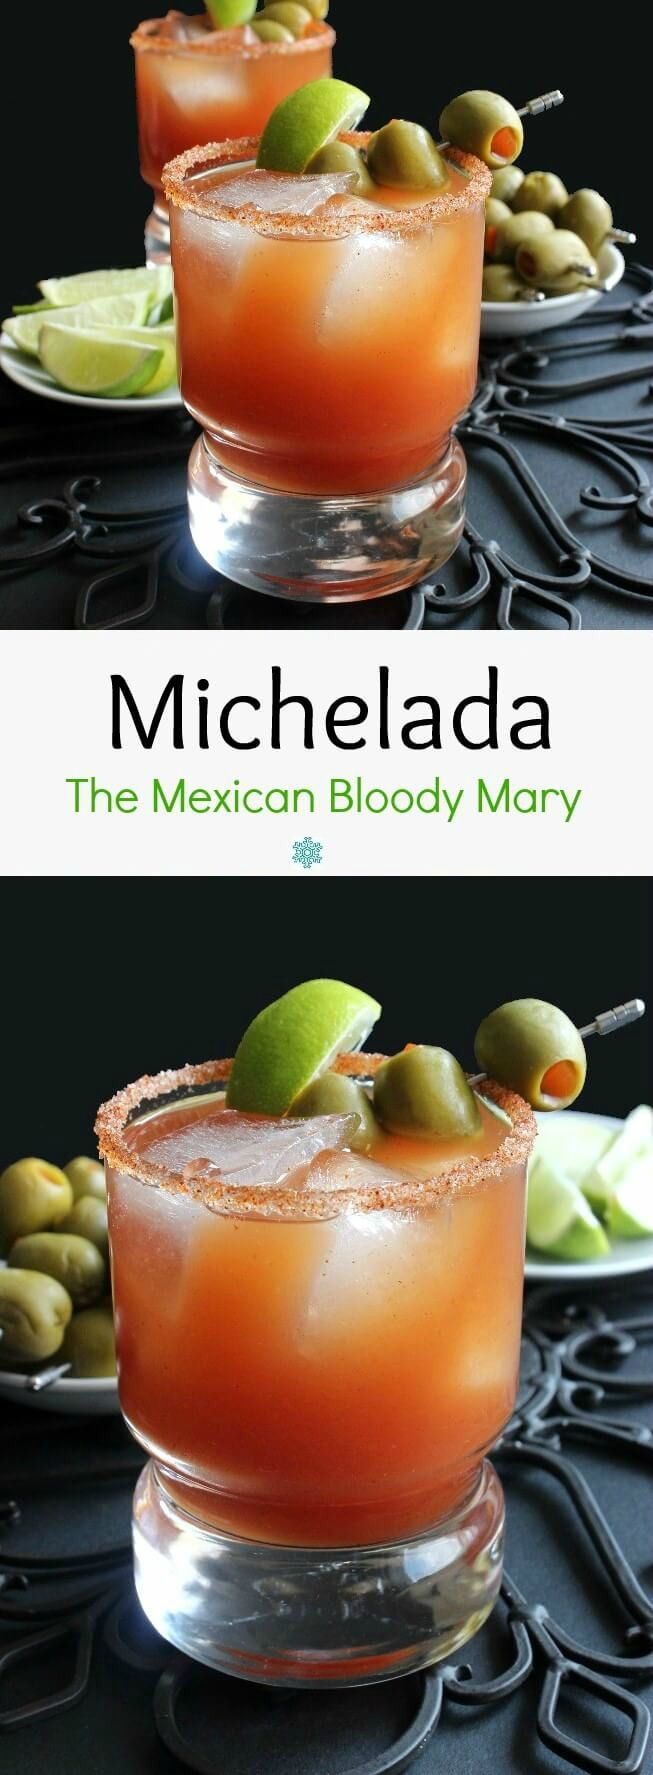 Add a little spice to your life with a Michelada.  The perfect balance of tomato, lime, hot sauce and an ice cold beer.  A tradition that you shouldn't miss.